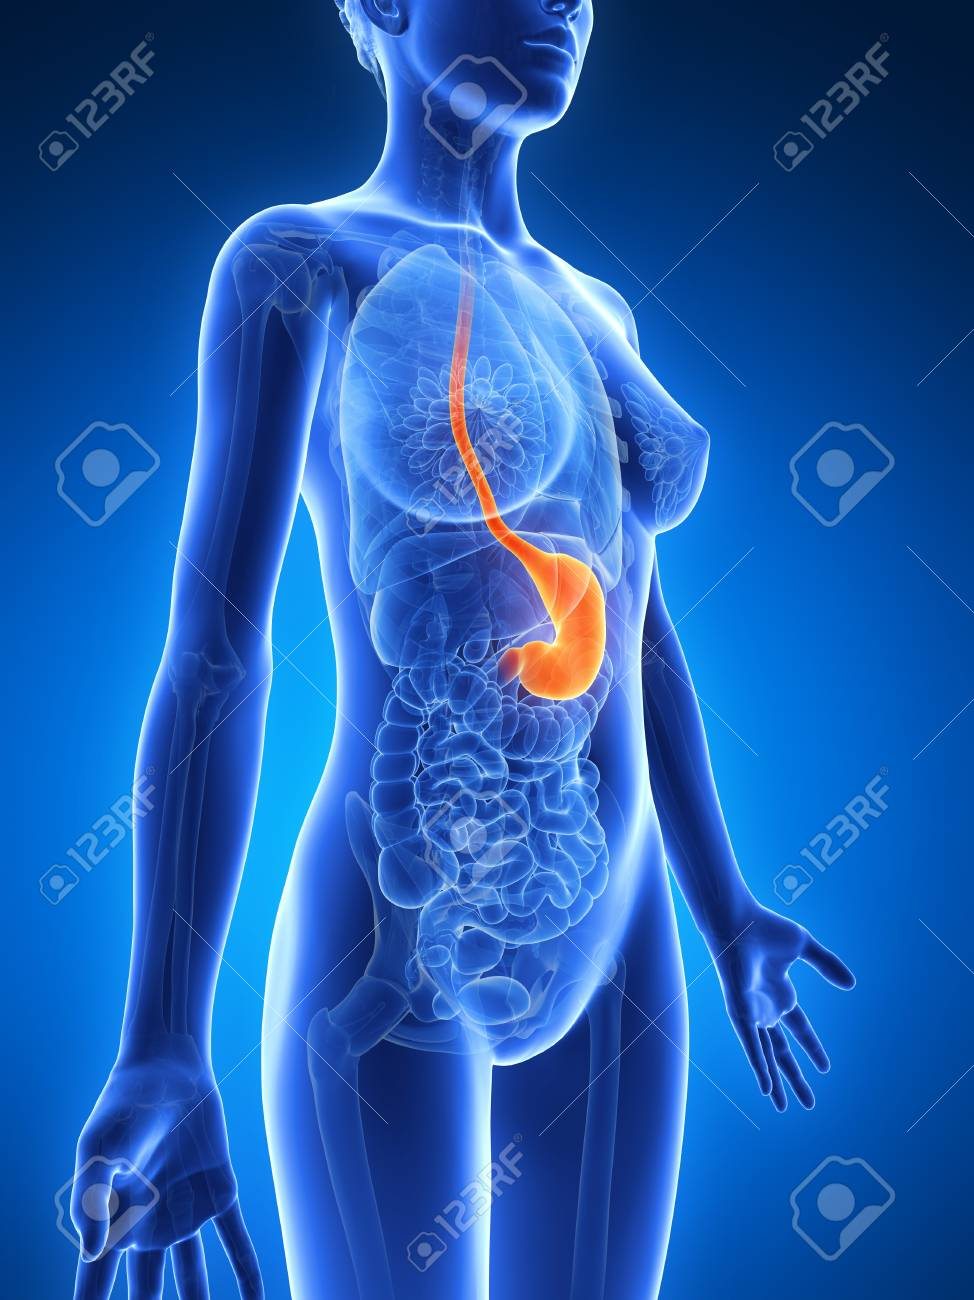 Anatomy Of Female Stomach Illustration Stock Photo Picture And